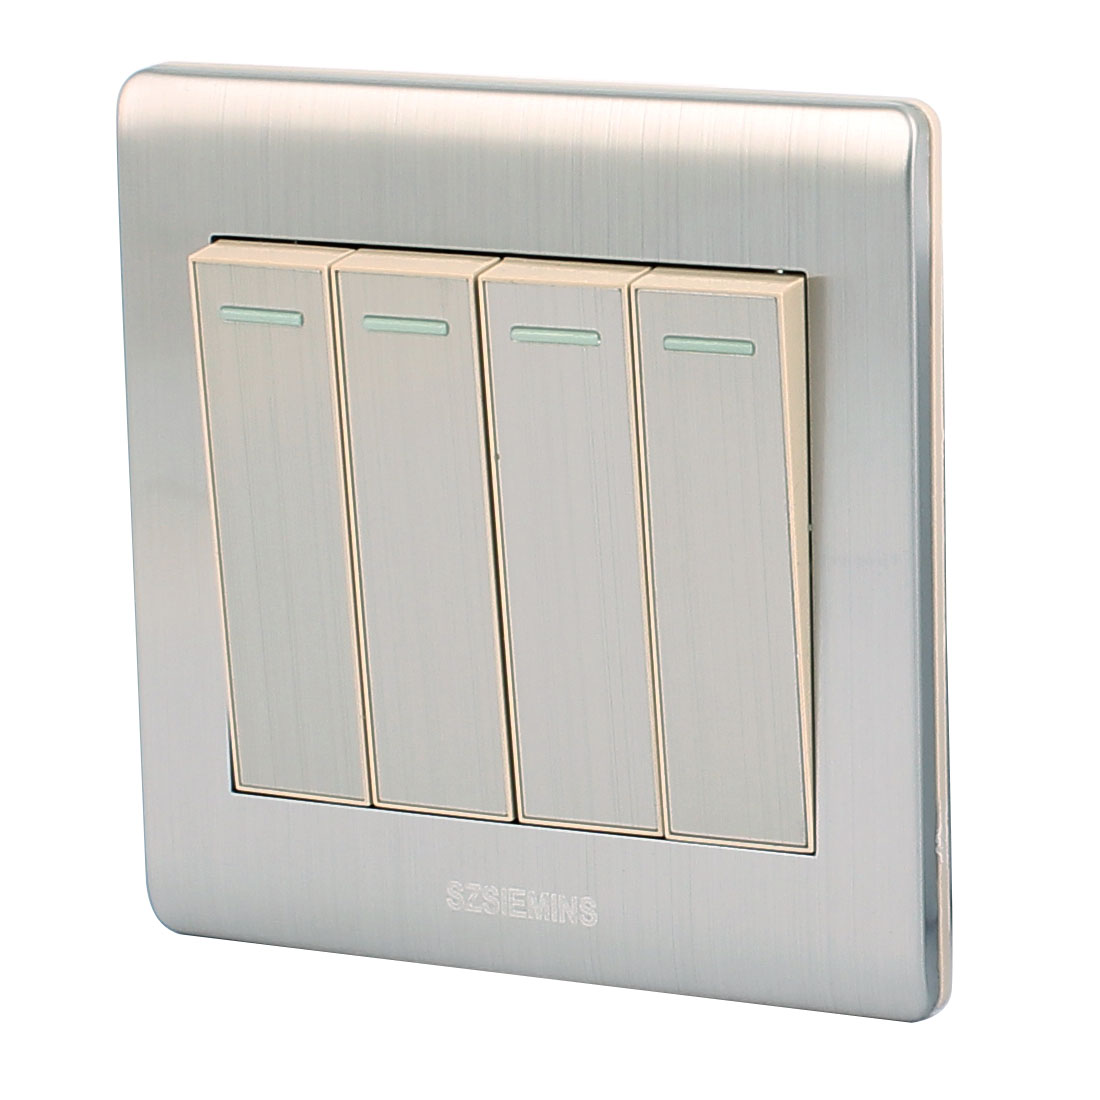 AC 250V 10A 4 Gang 1 Way On/Off Stainless Steel Well Designed Wall Light Switch